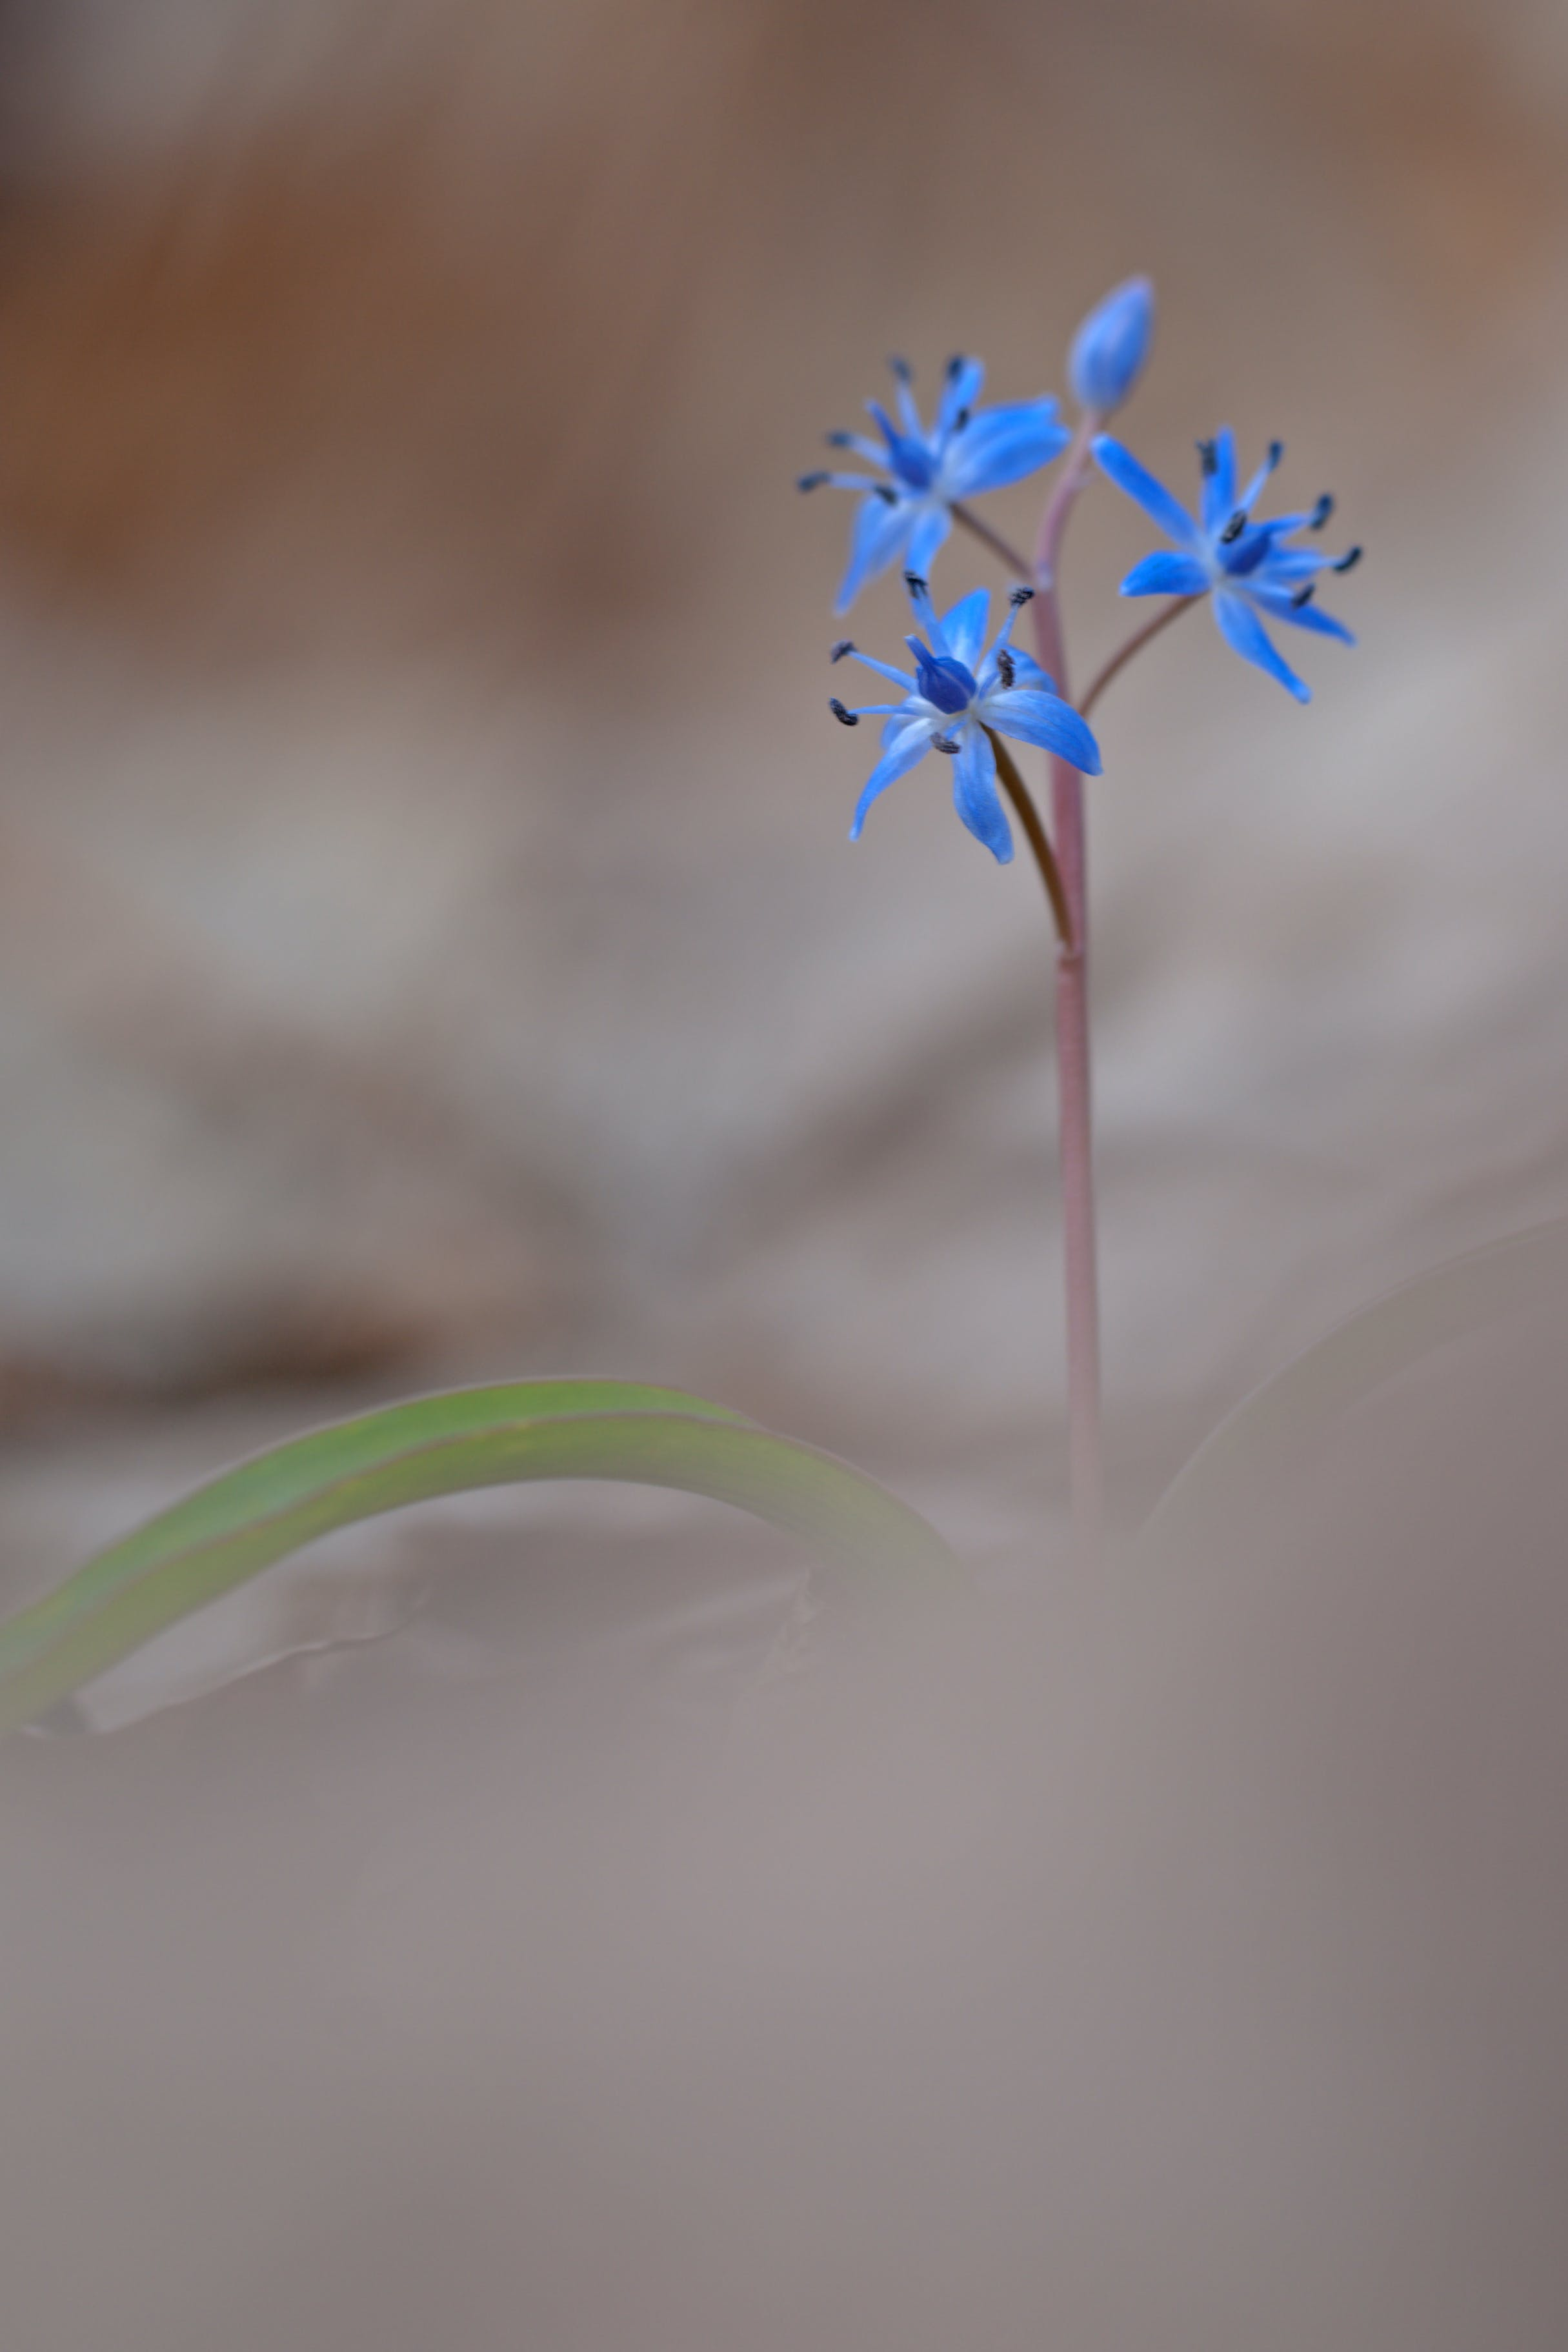 Blue Small Flowers in Bokeh Photography